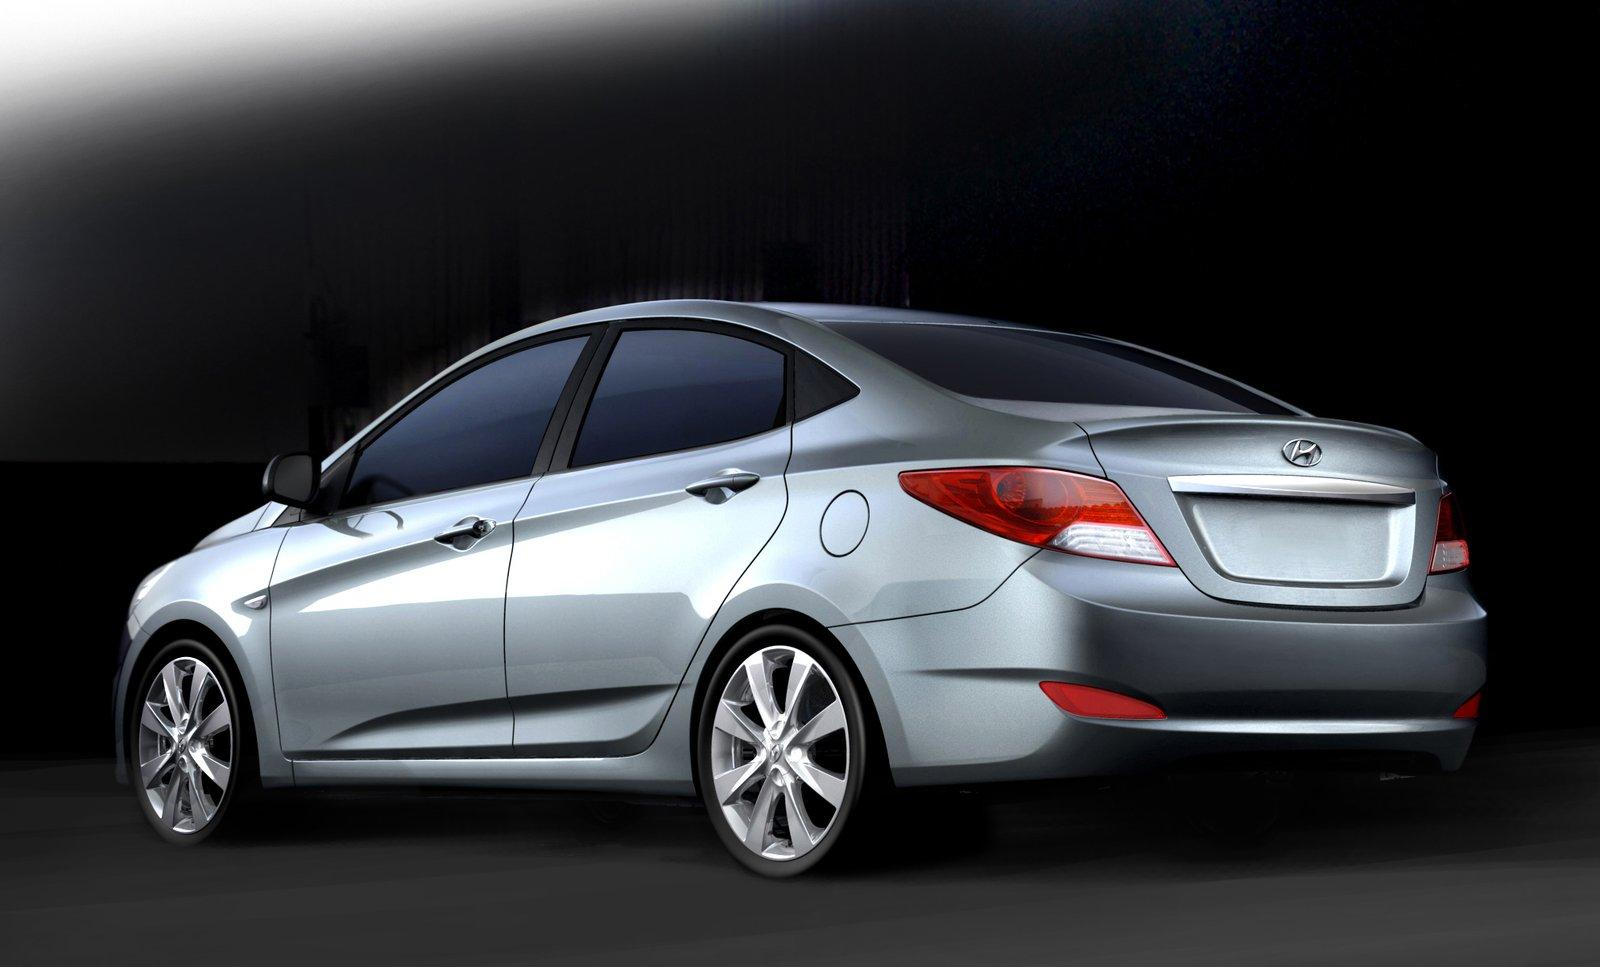 2011   2012  Hyundai Verna Fluidic RB 2011 Price in India  Verna